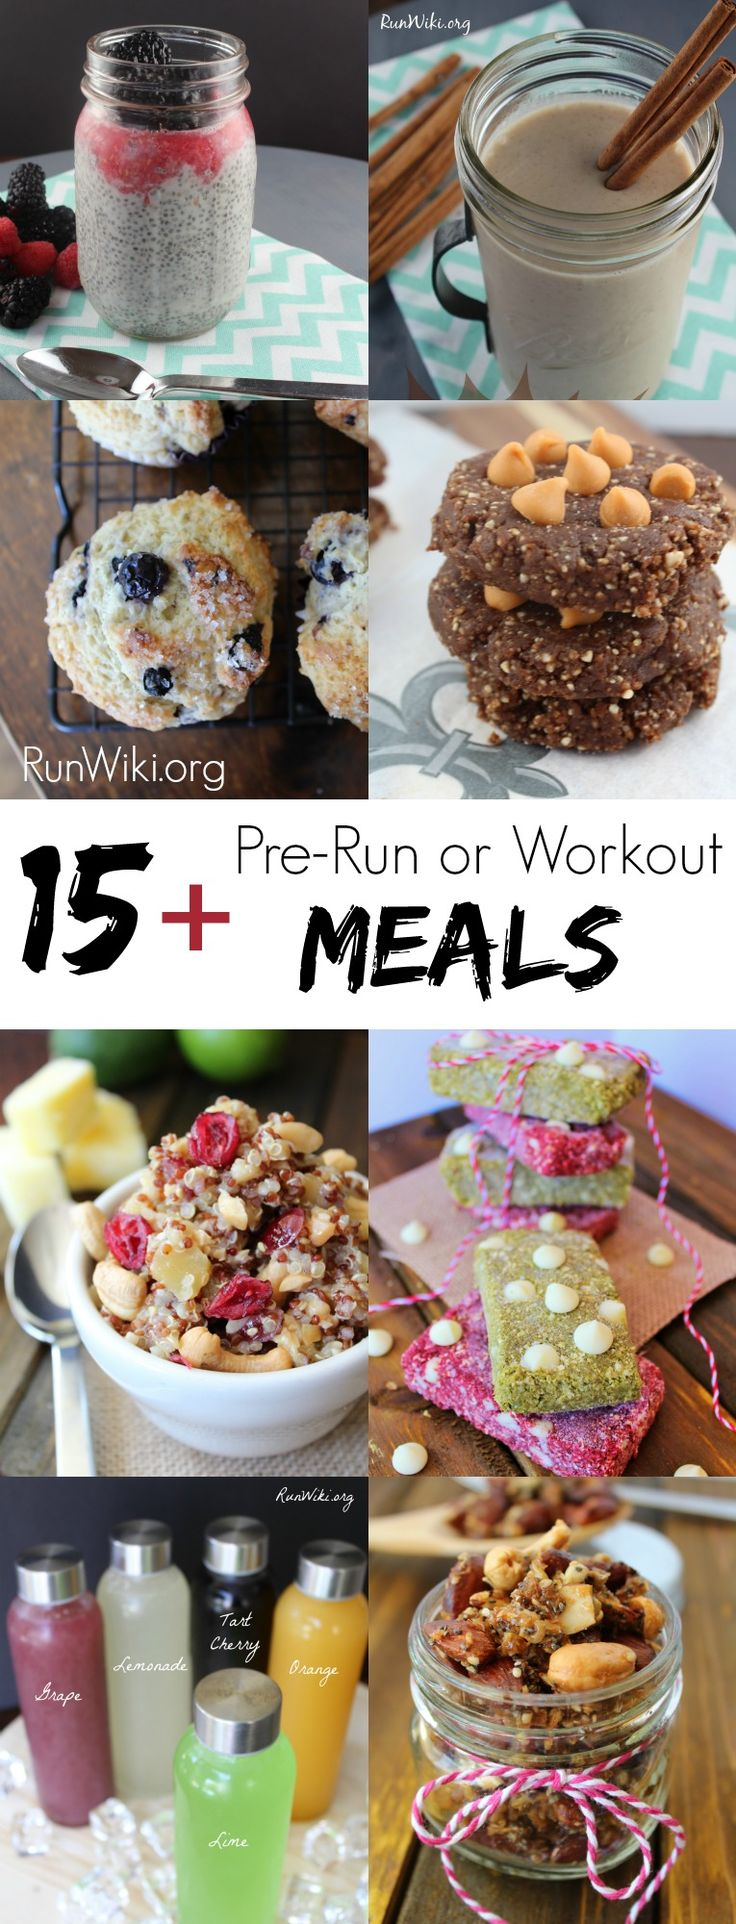 Pre Long Run and workout meal ideas. Small snack ideas to fuel you run for the long haul. These are my go to energy sources when I need to go the distance. I eat #3 all of the time. Running  Half Marathon training   Beginners   plan